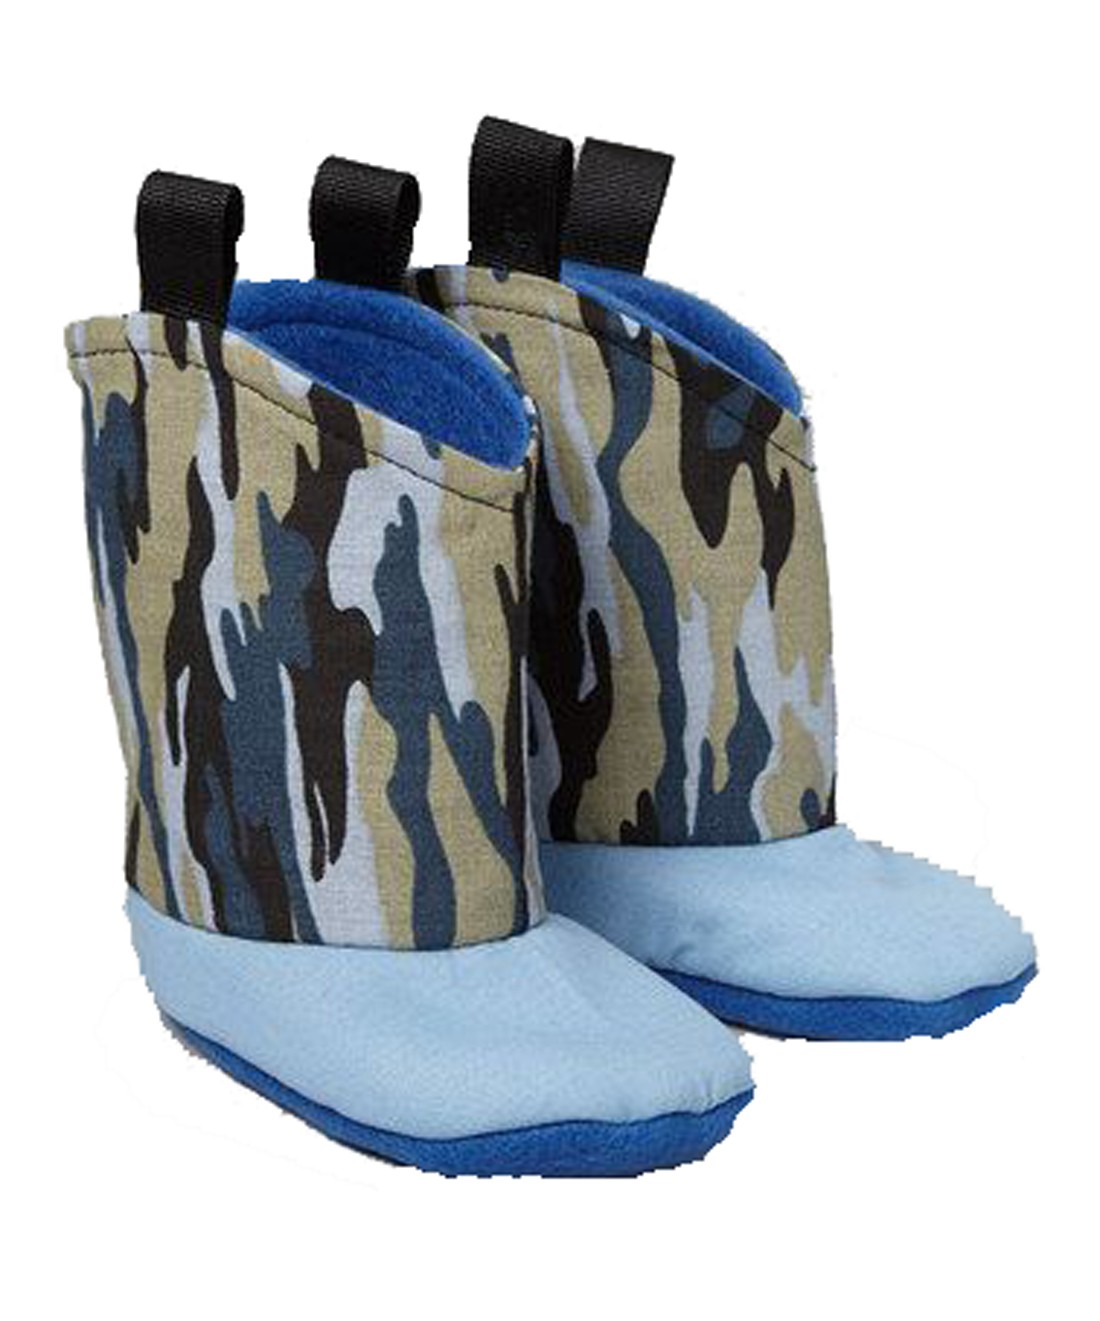 Blue Camouflage Boots